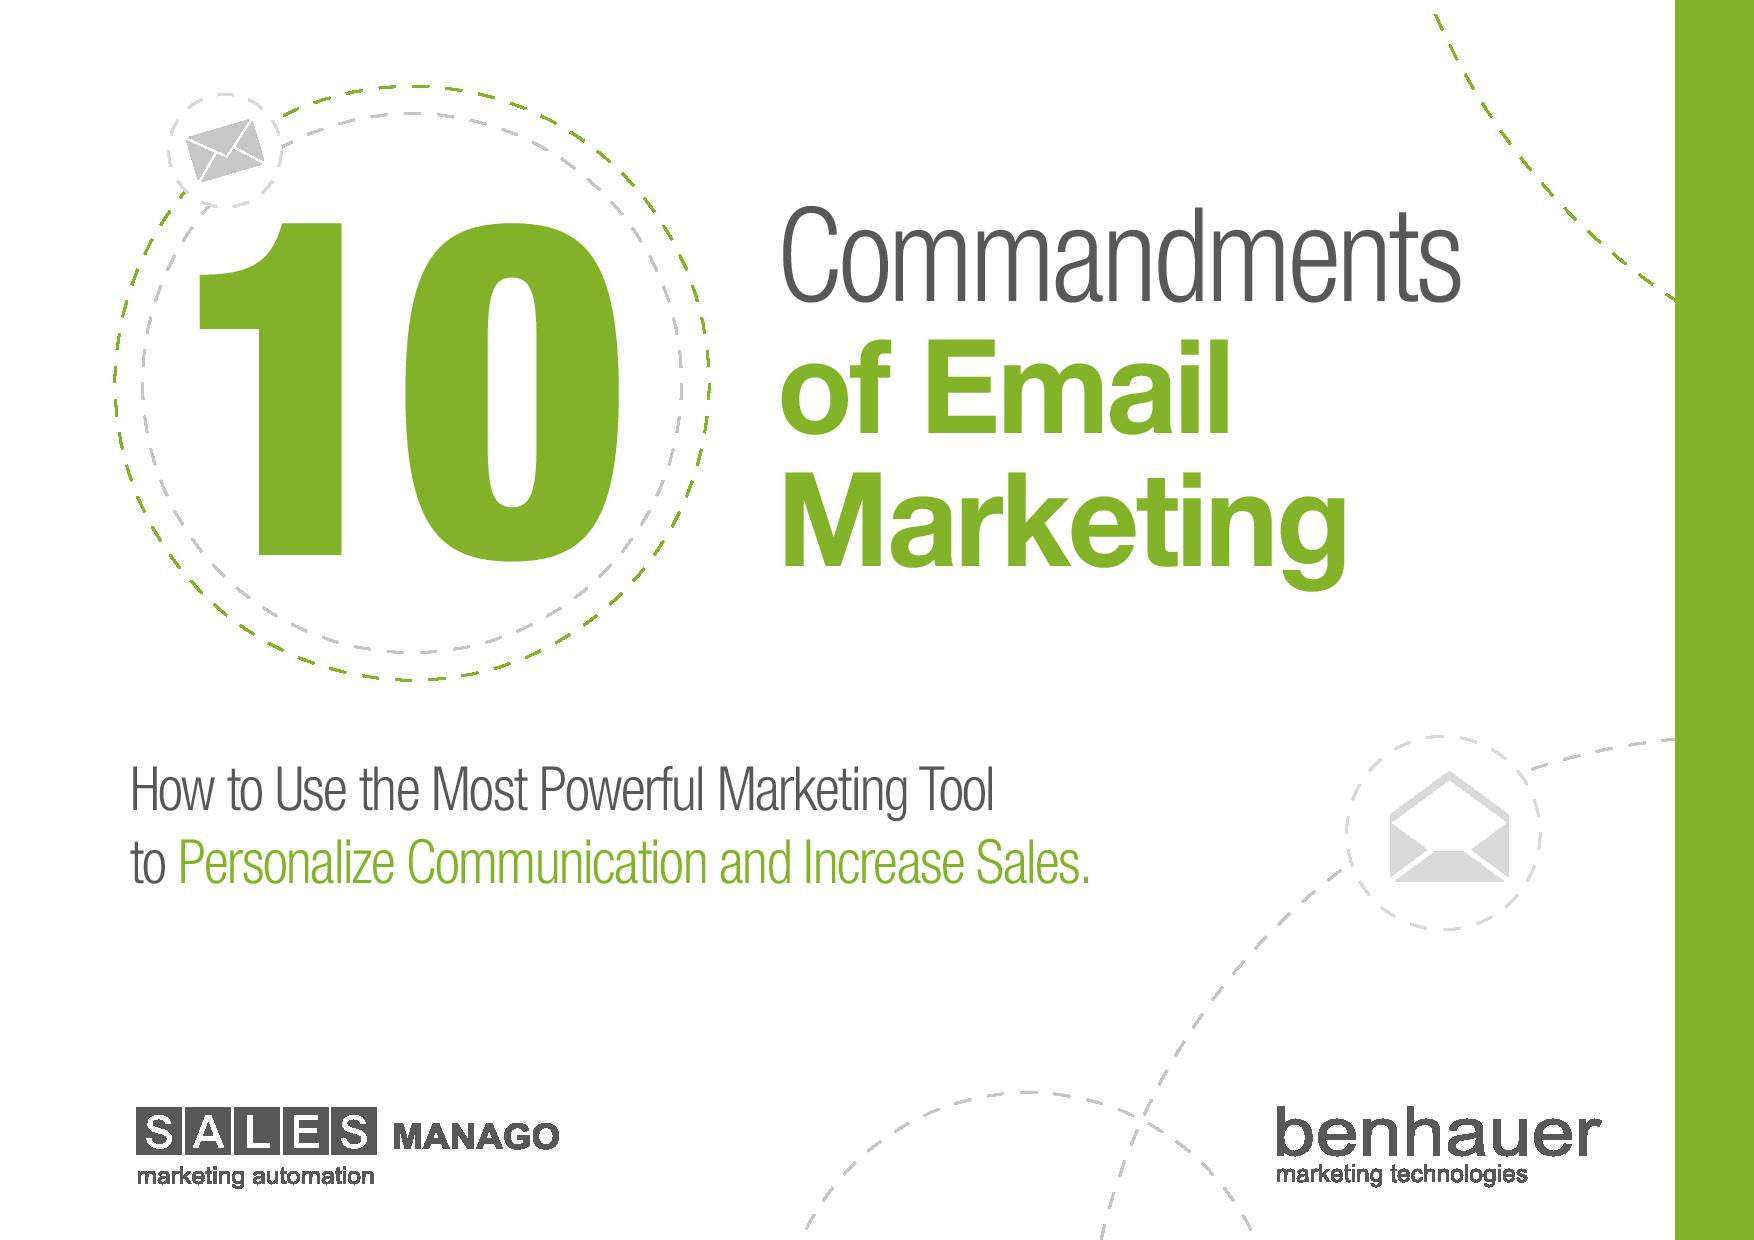 10 Commandments of Email Marketing